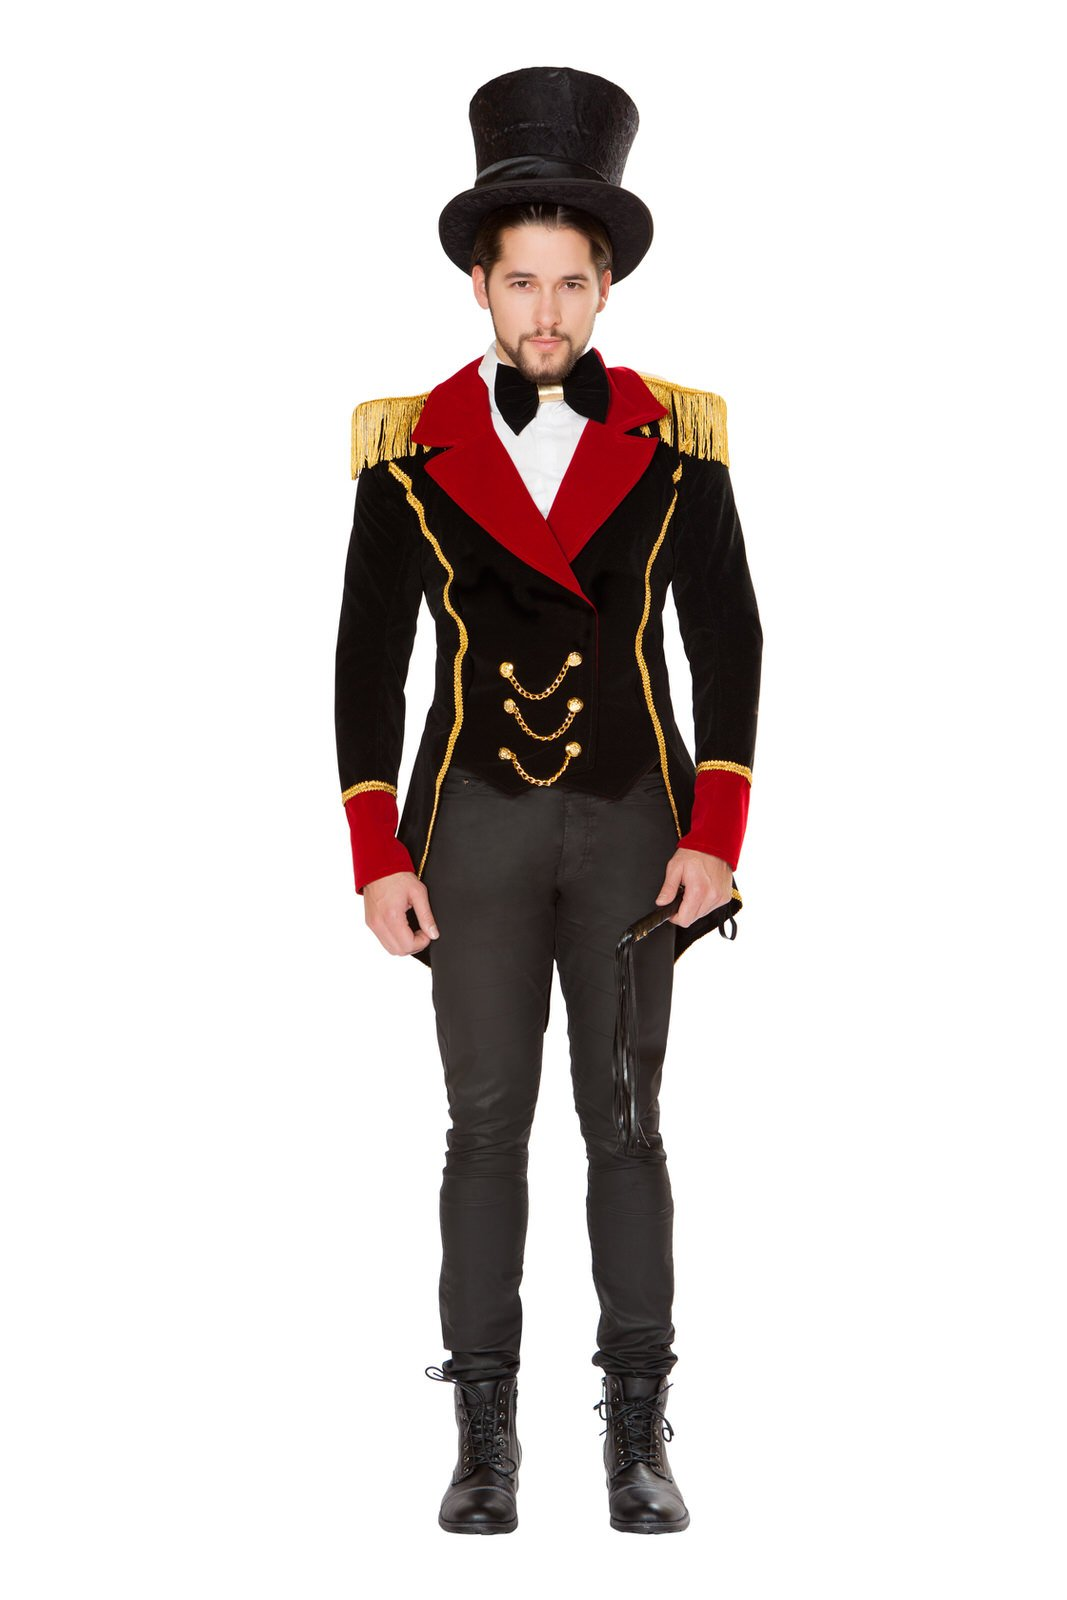 Fest Threads 3 PC Circus Ringleader Black & Red Jacket w/Accessories Party Costume